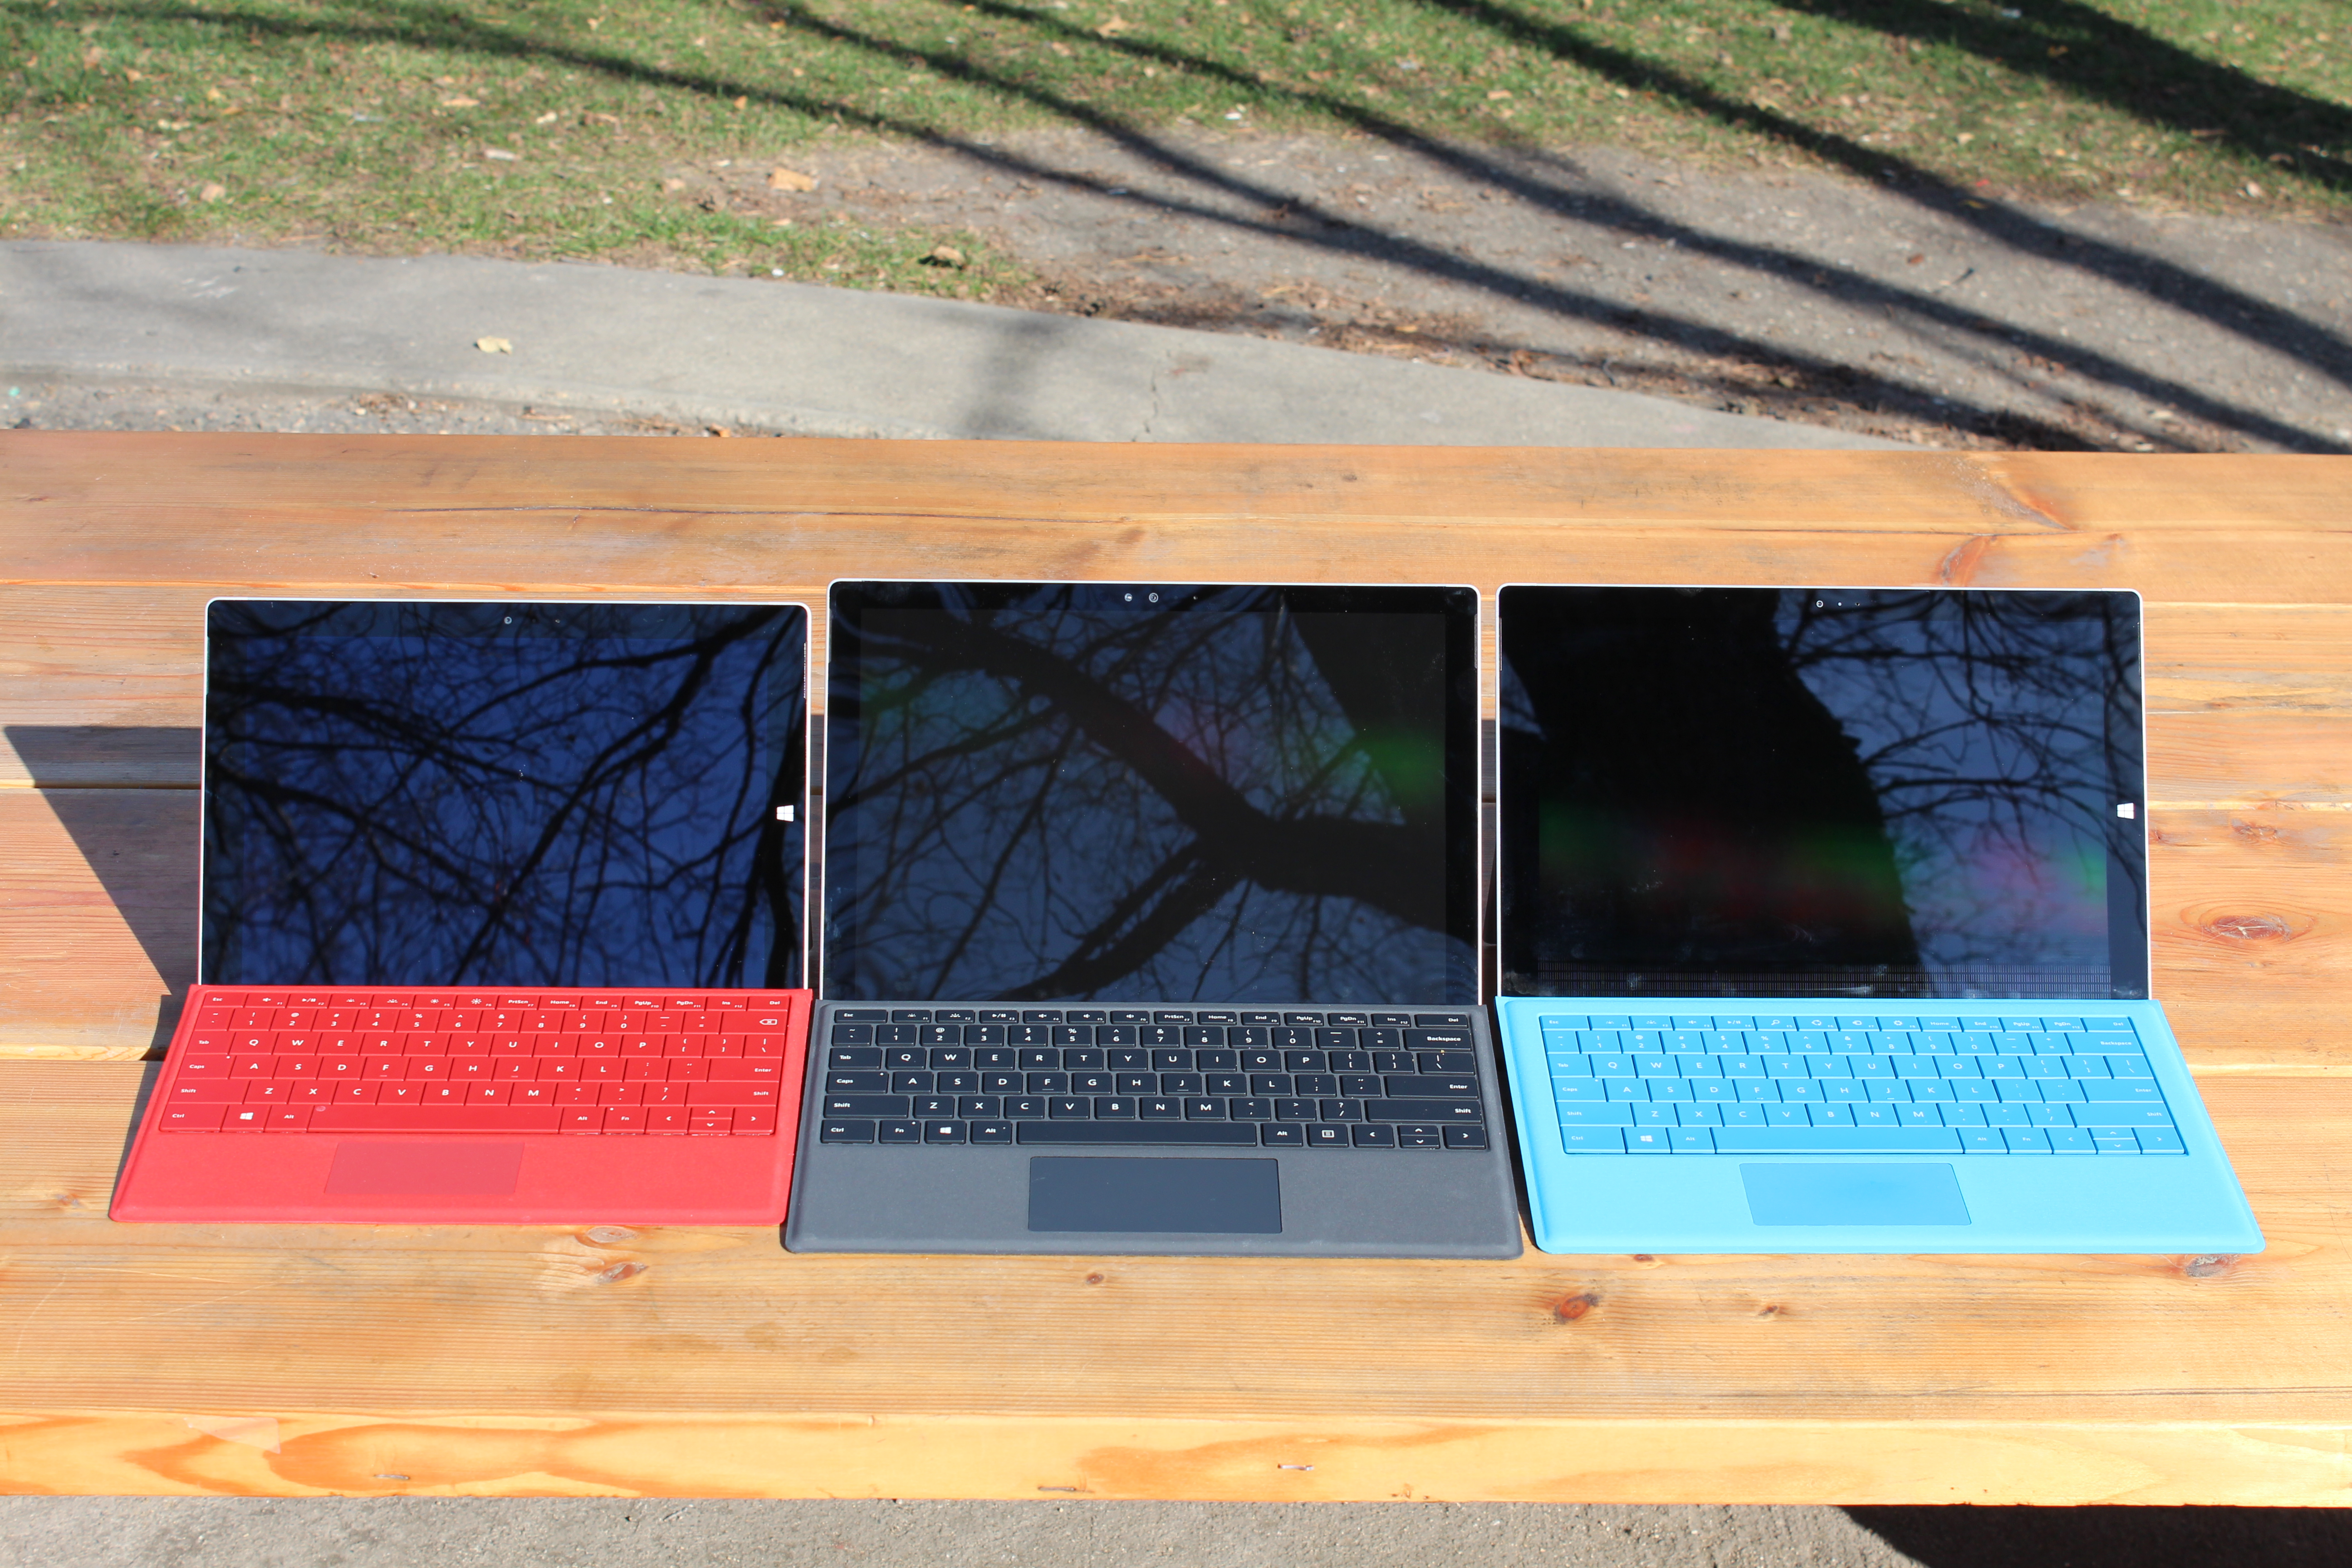 Top 10 microsoft surface pro 3 cases covers best microsoft surface pro - Top 10 Microsoft Surface Pro 3 Cases Covers Best Microsoft Surface Pro 43